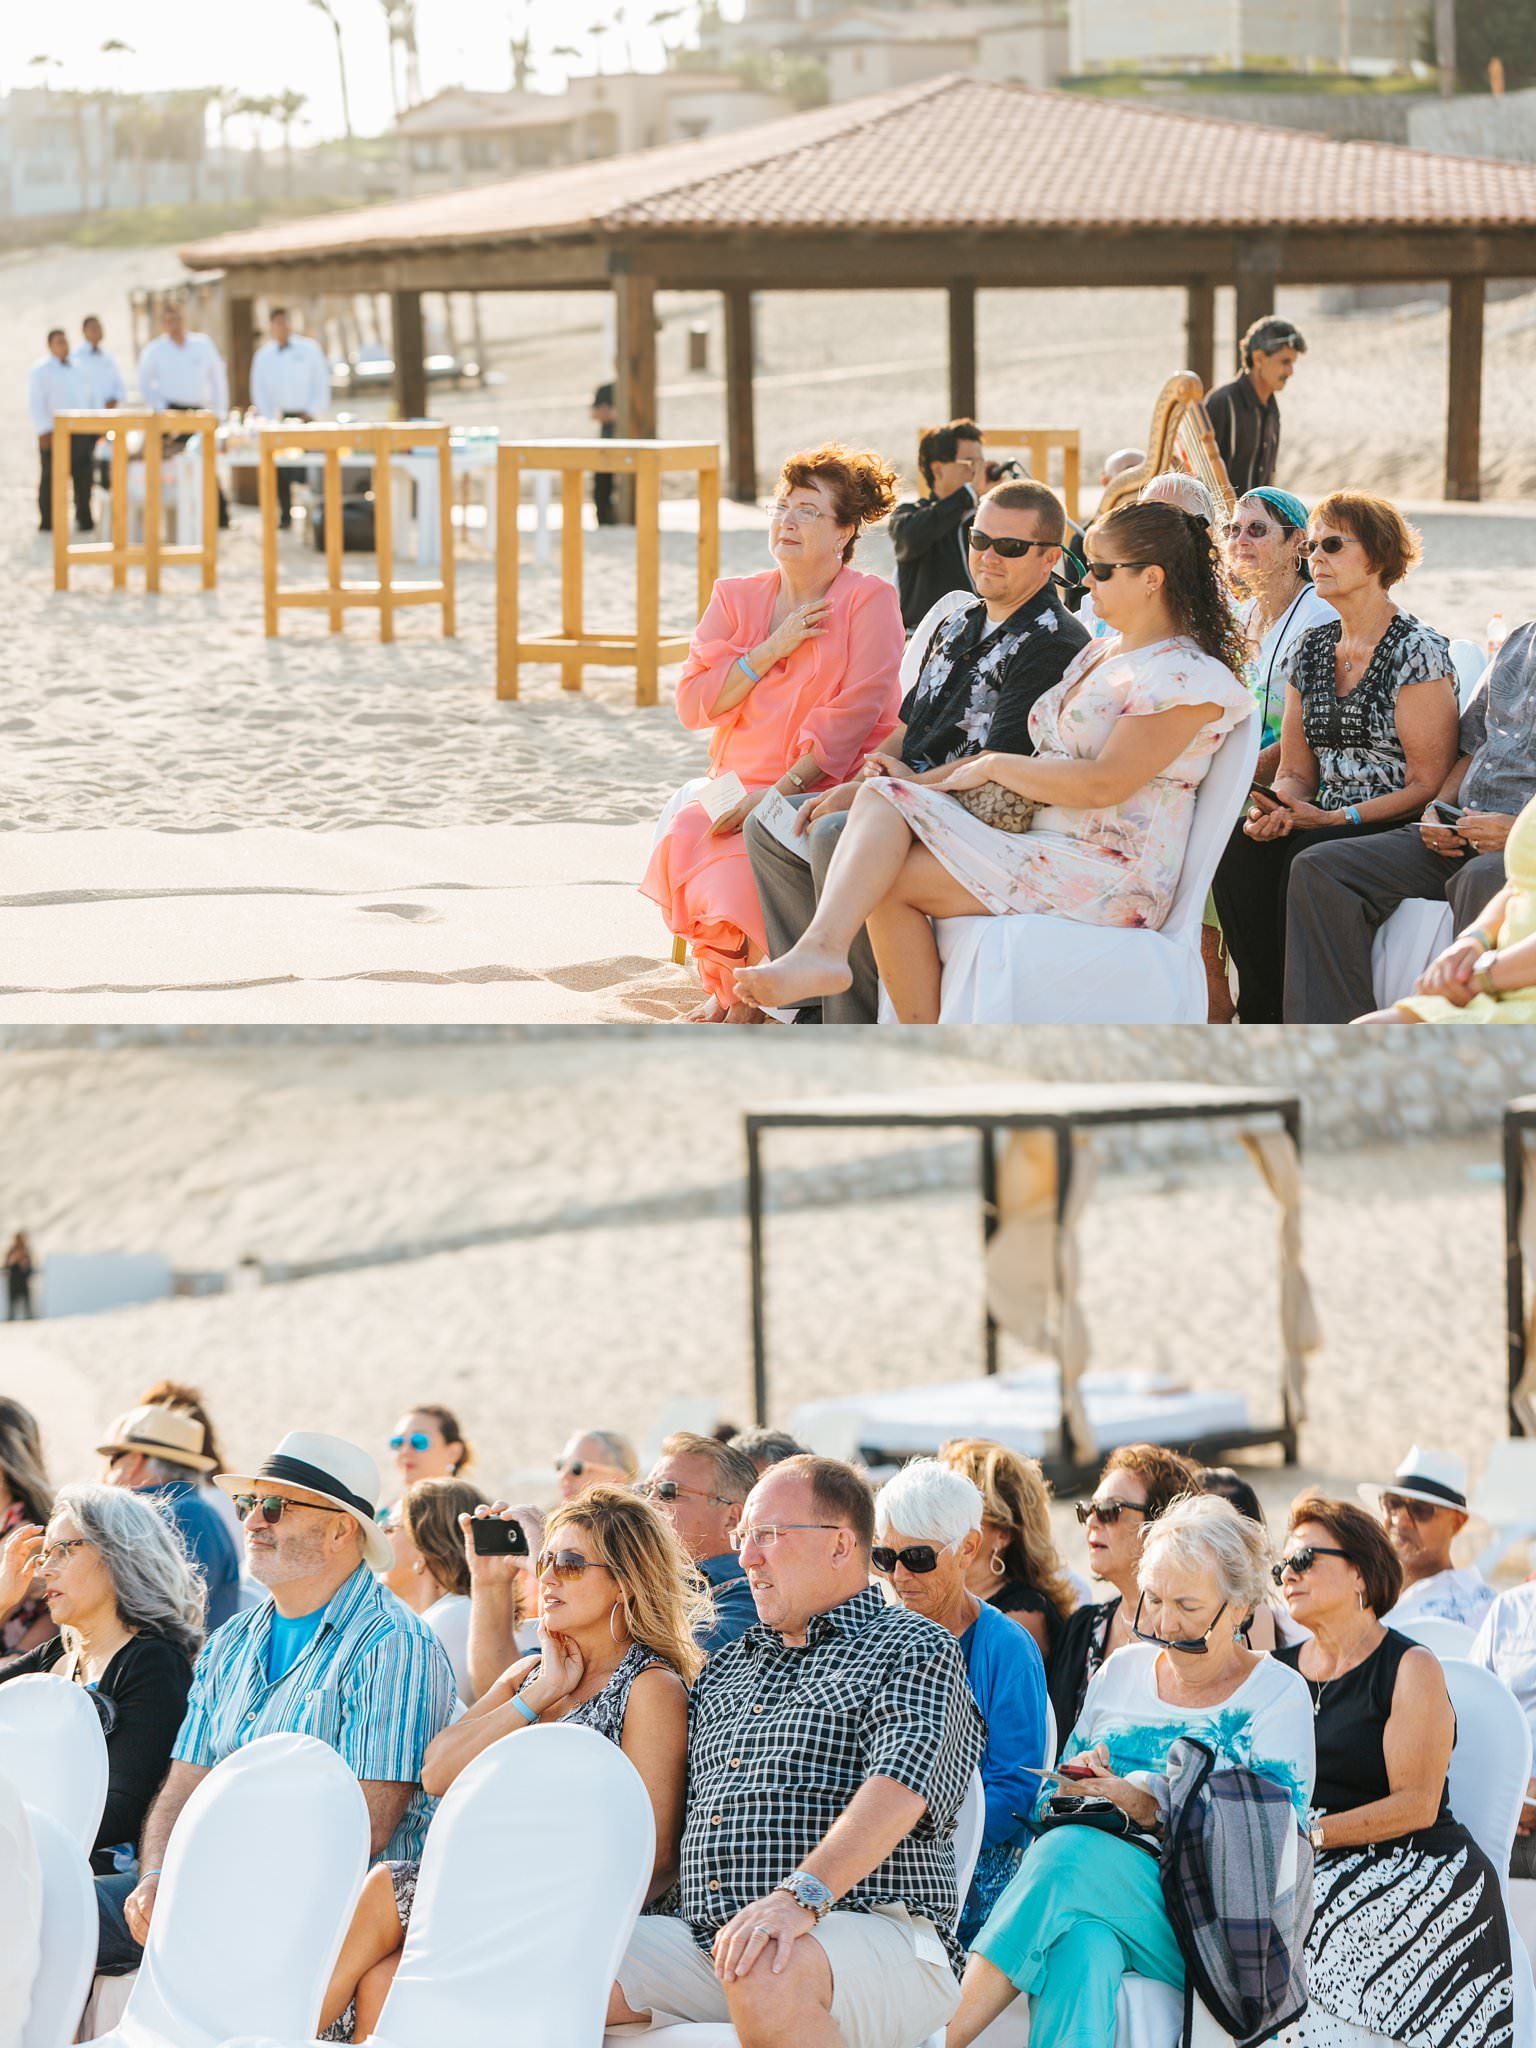 Guests during beach wedding in Cabo - https://brittneyhannonphotography.com